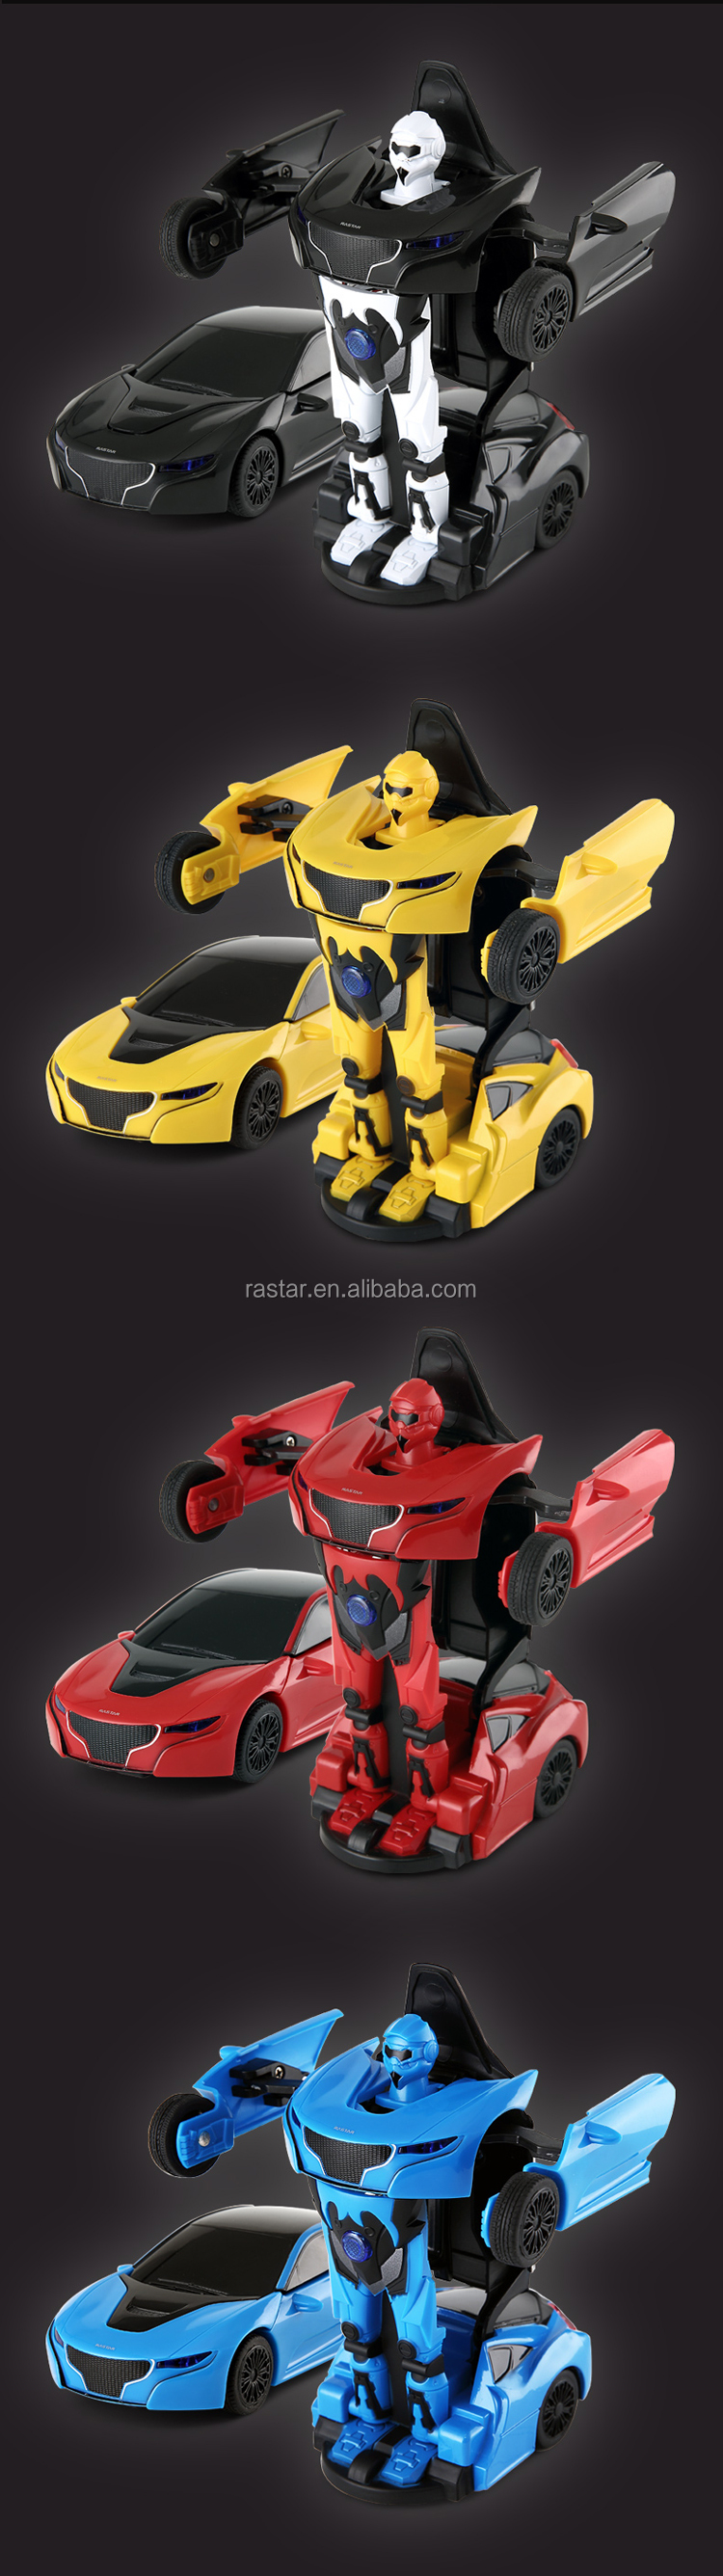 Alloy toy kids rc fighting robot toy from Rastar wholesale View